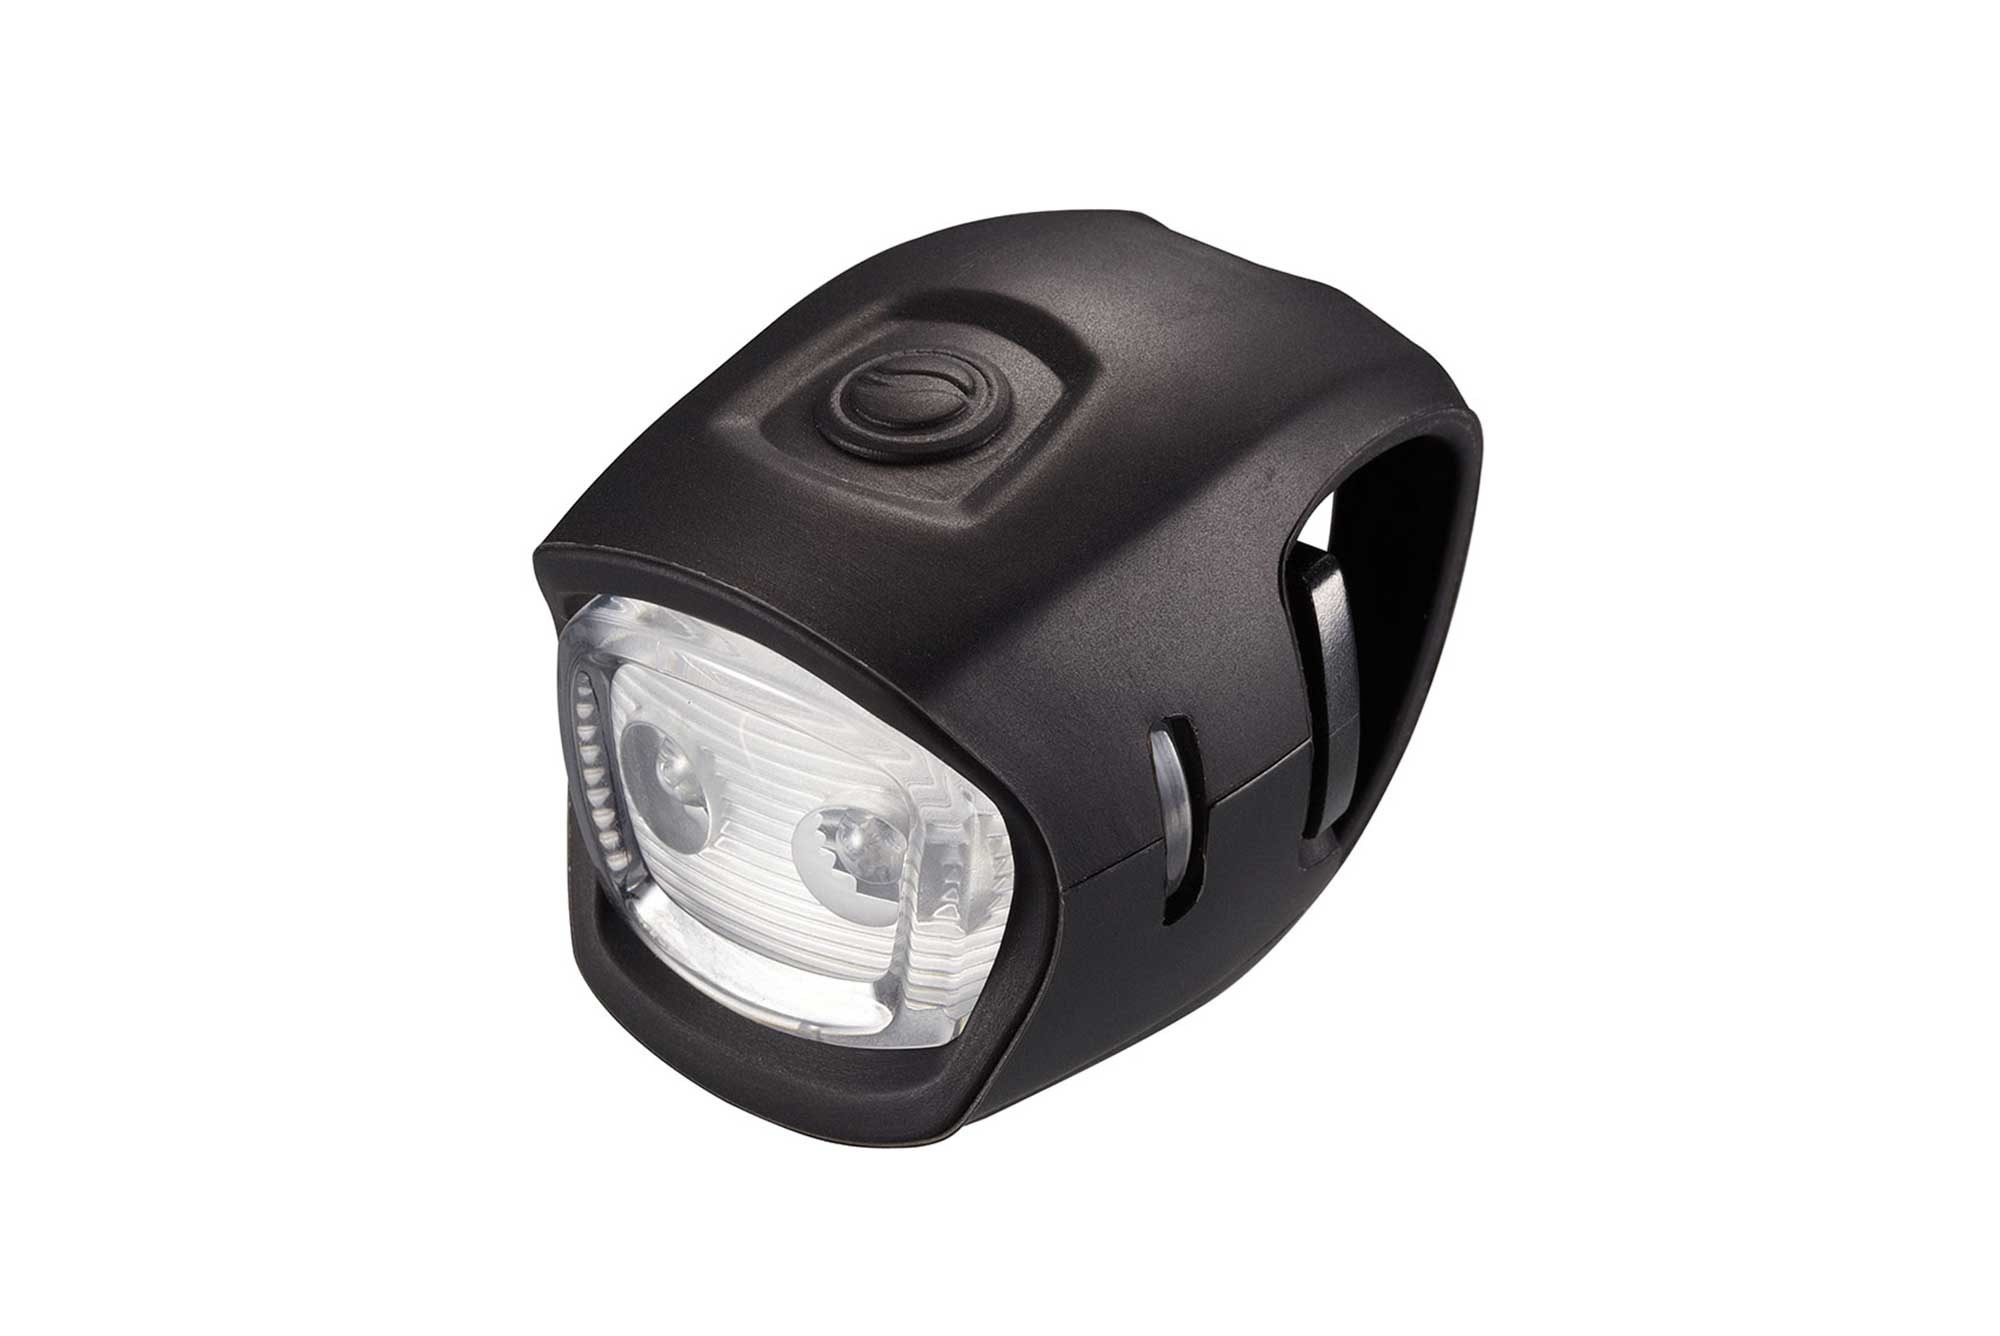 GIANT_NUMEN_MINI_HEADLIGHT_BLACK